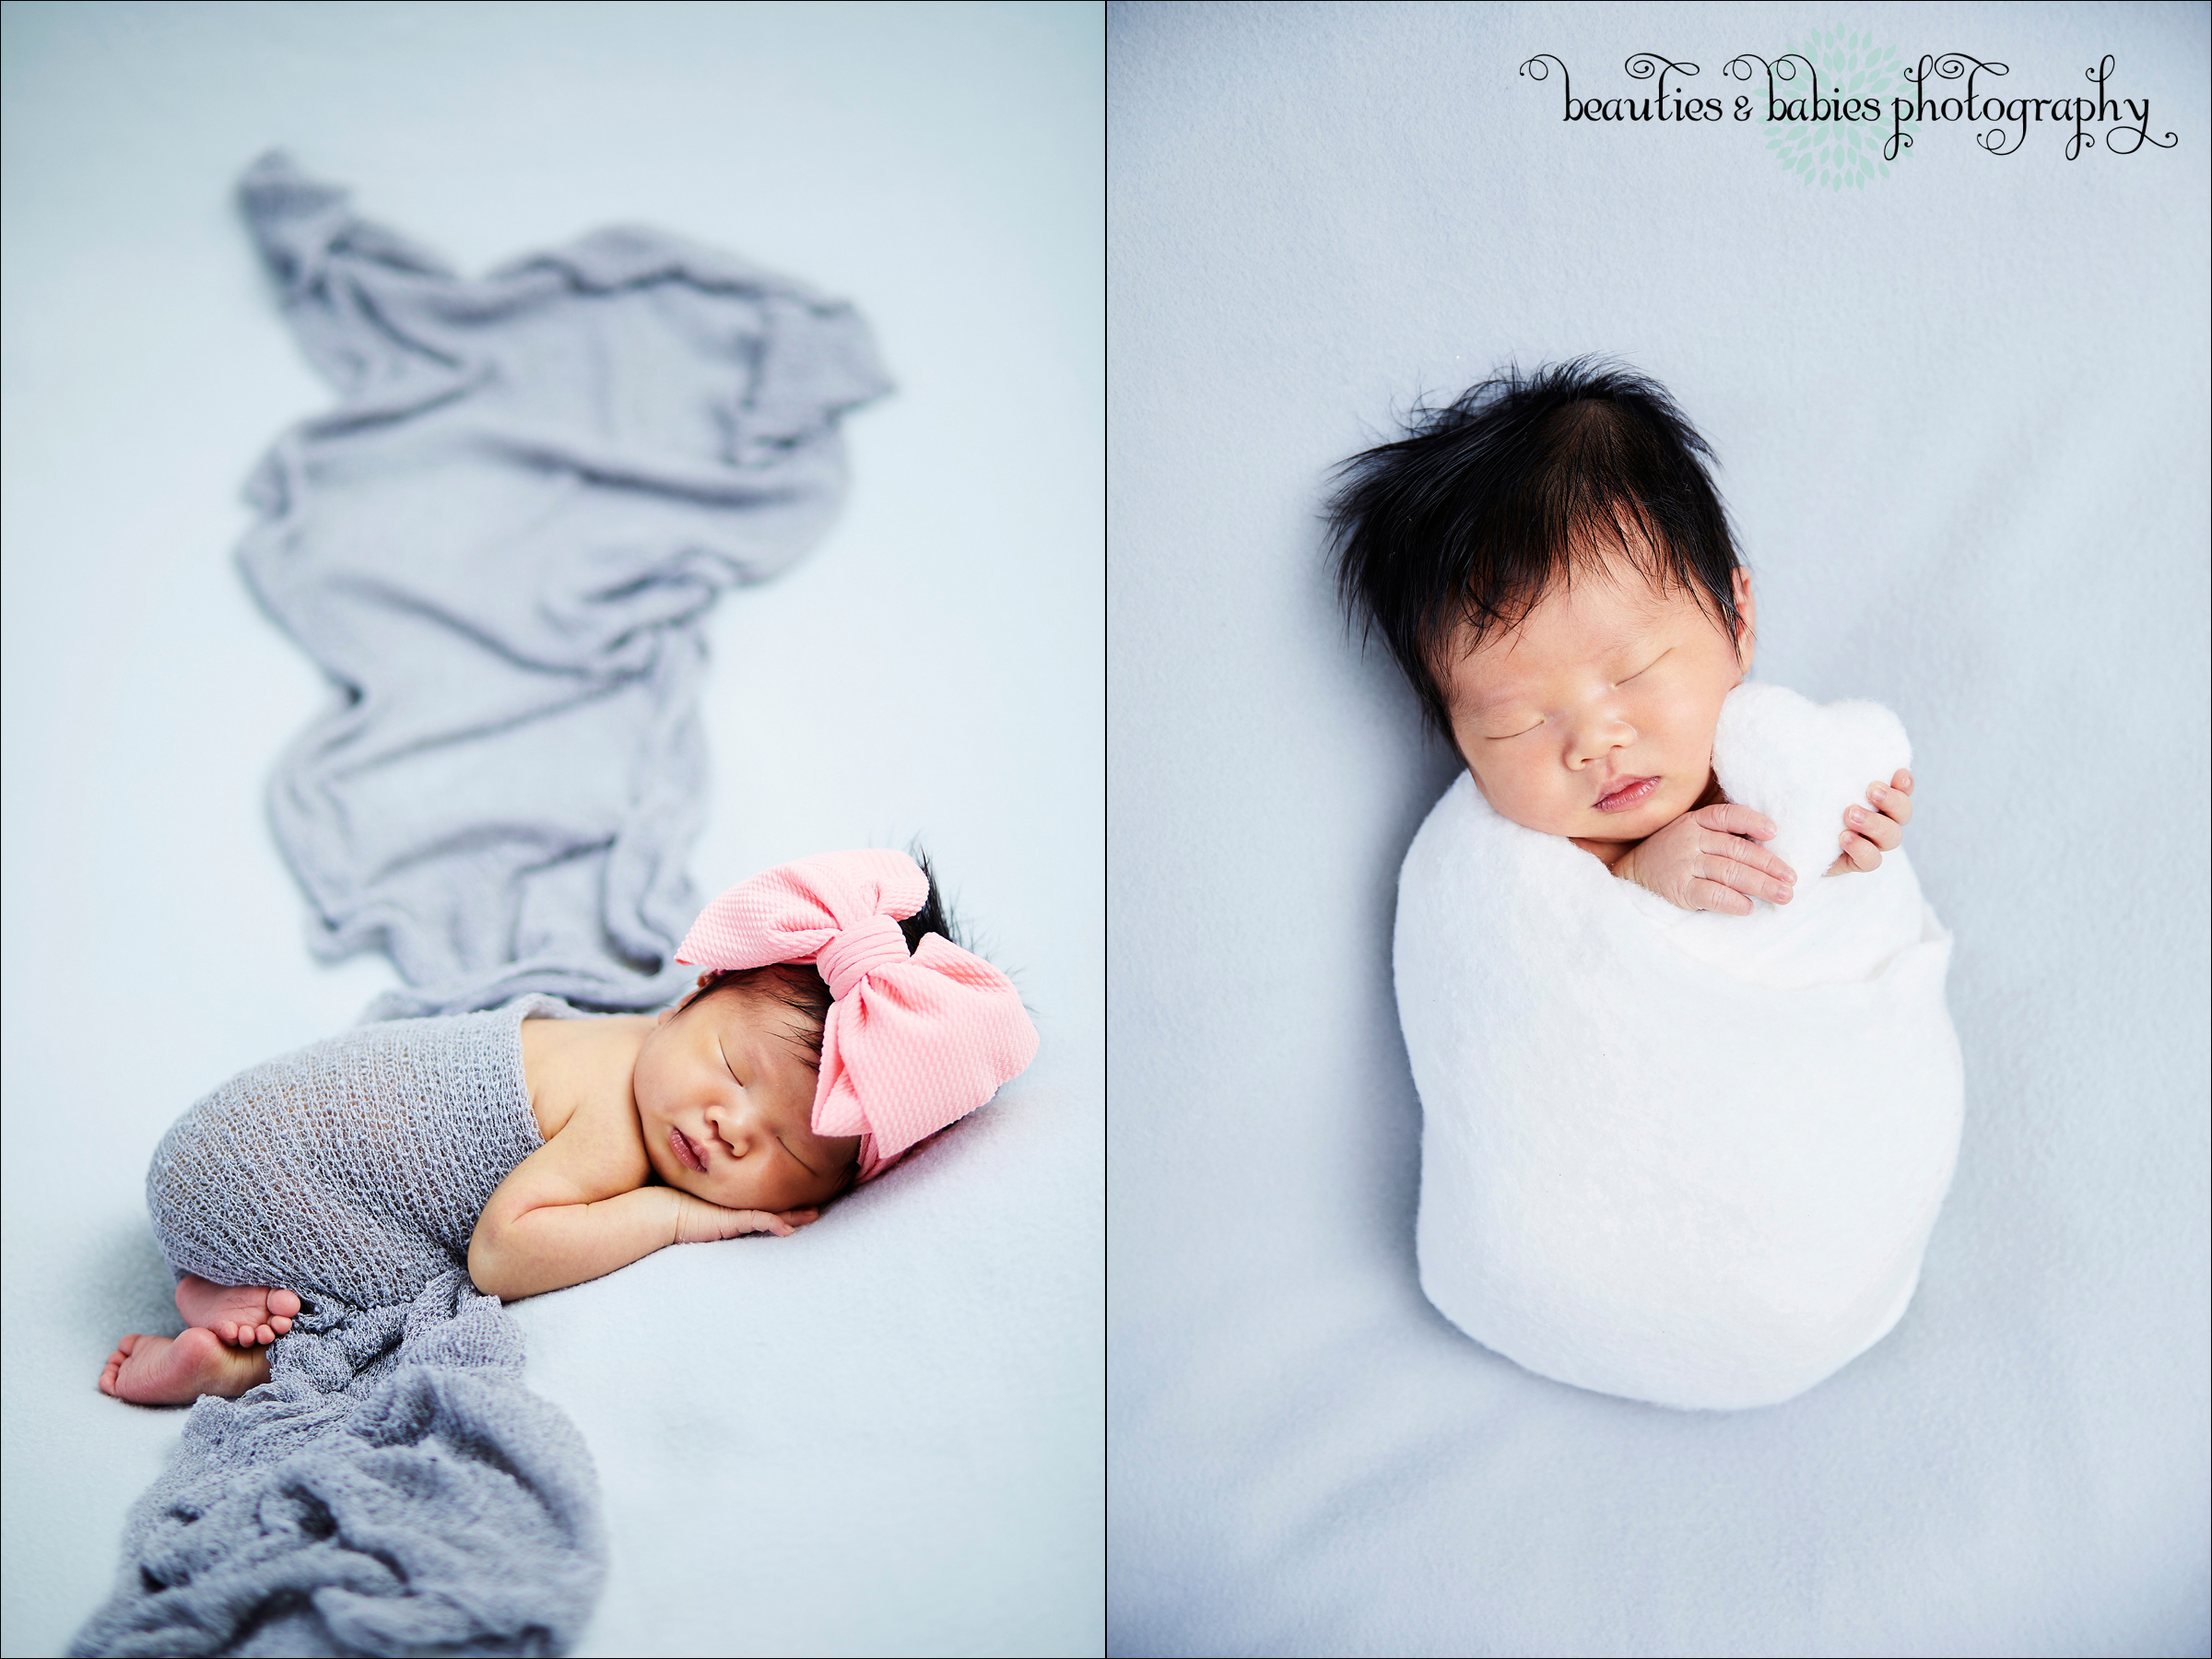 At home newborn baby photographer West Los Angeles professional pictures